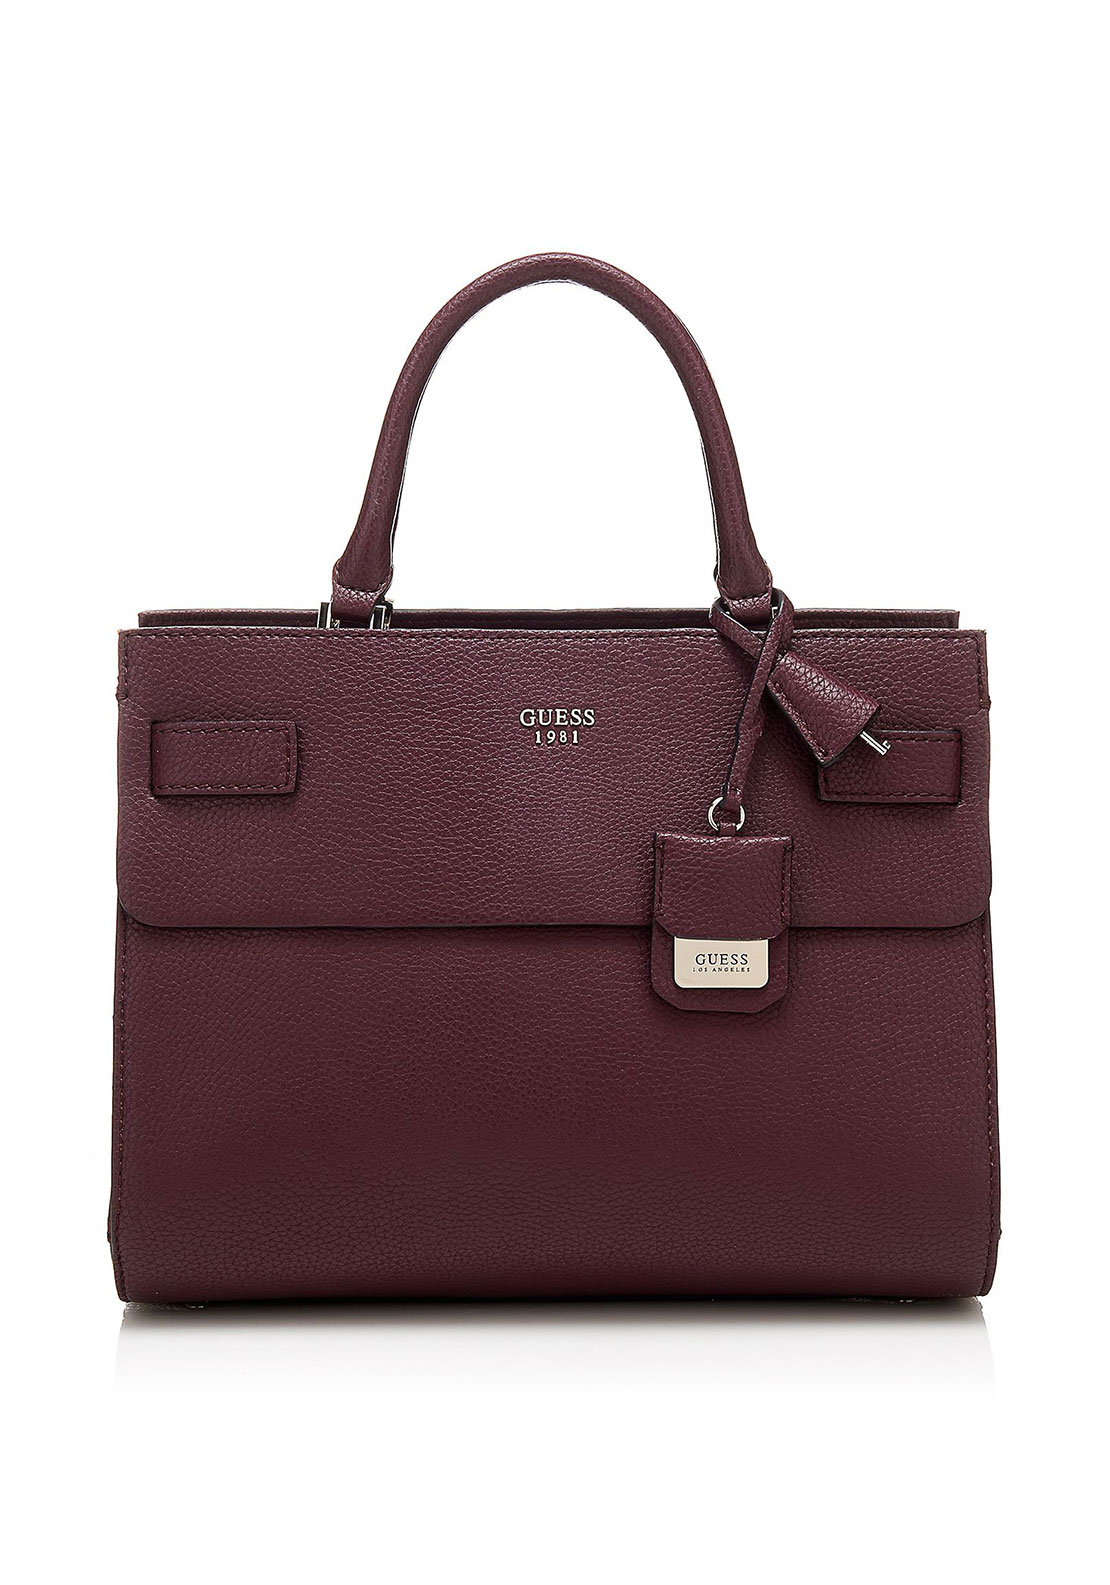 Guess Cate Rigid Tote Bag, Bordeaux